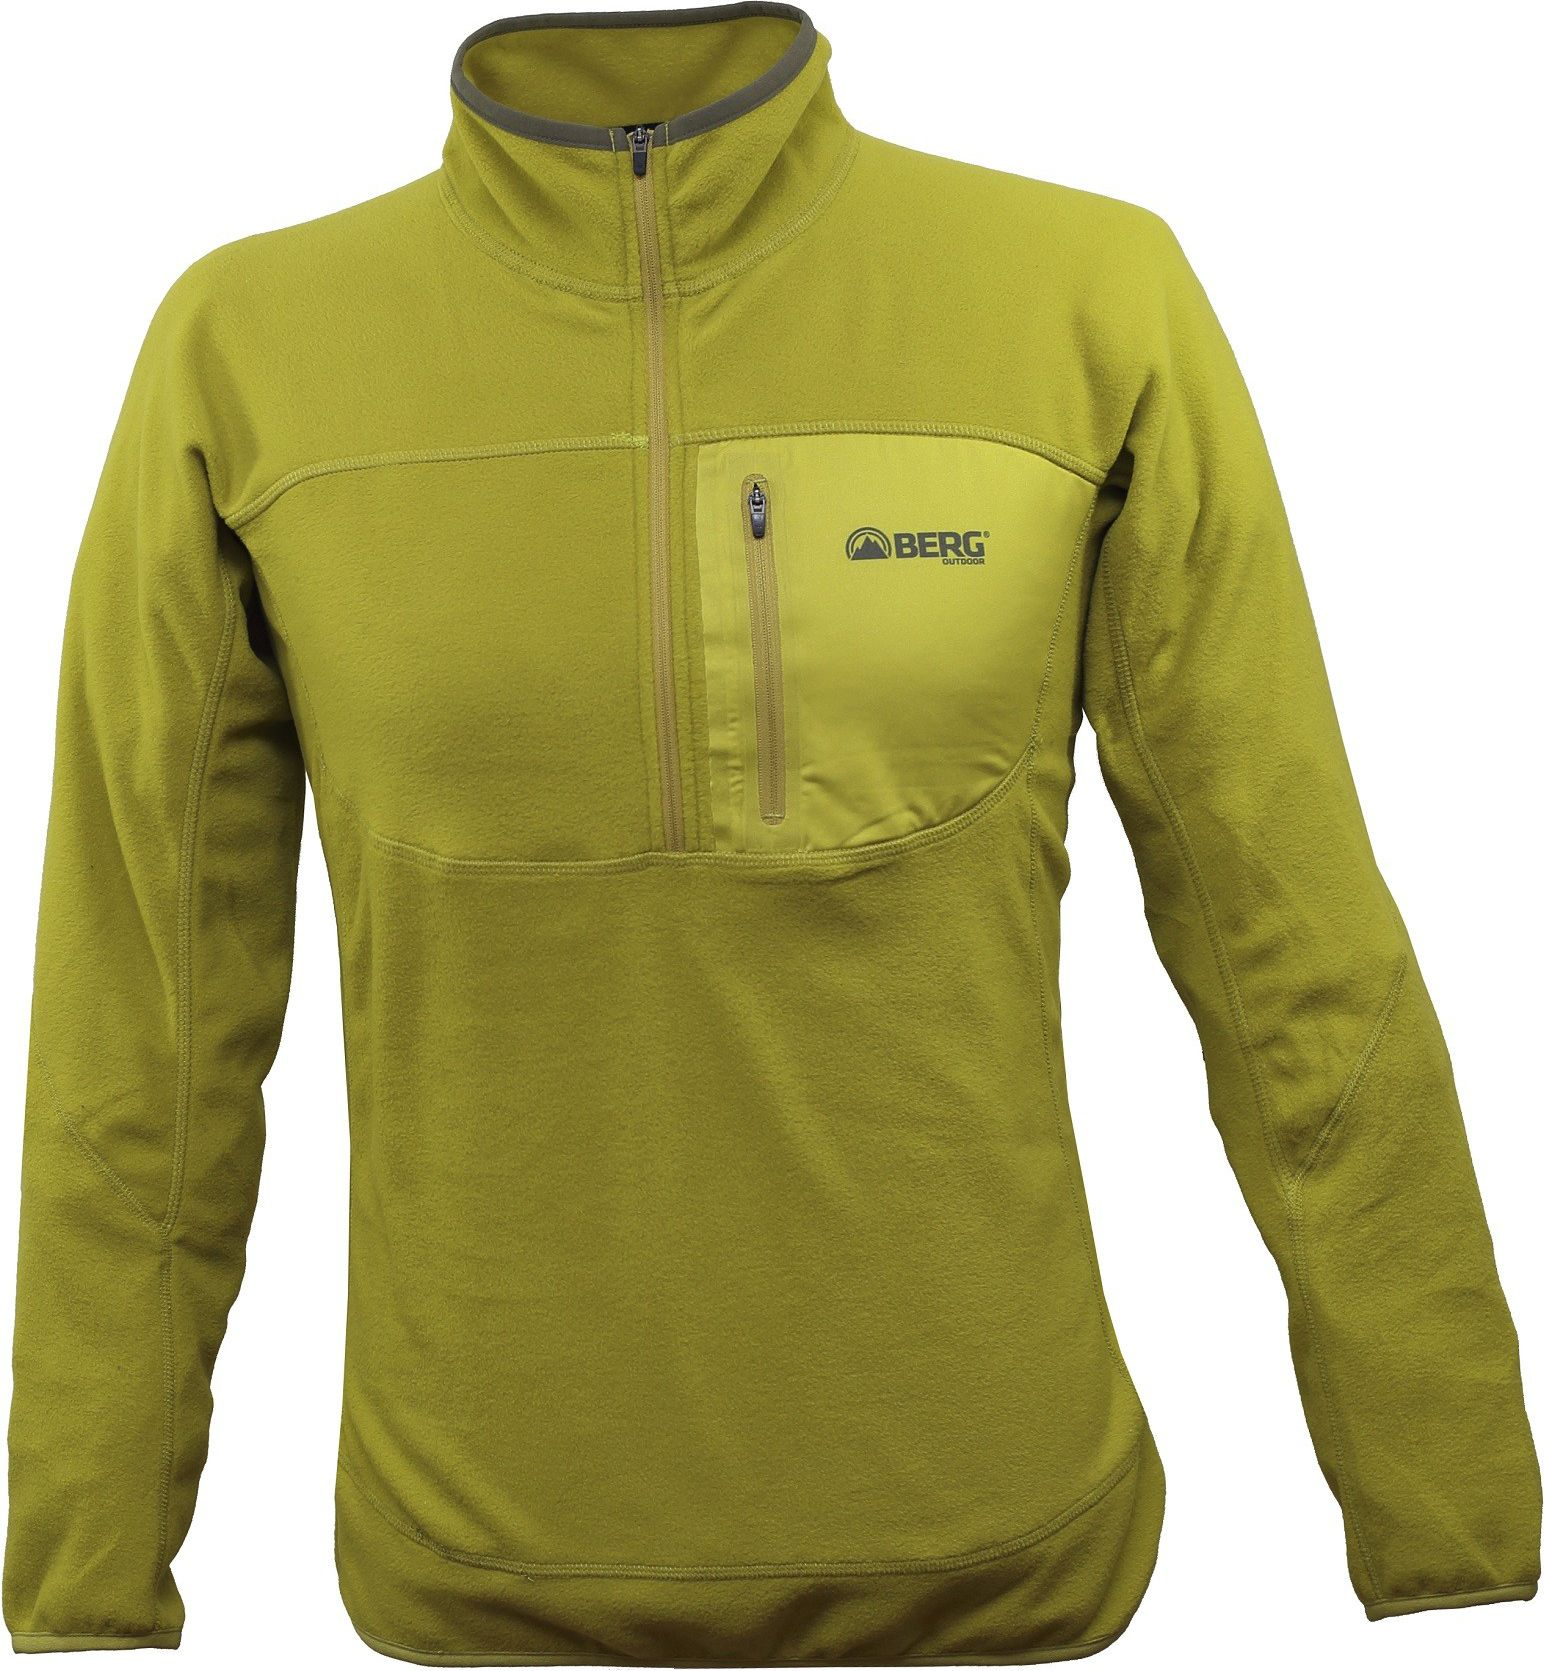 BERG OUTDOOR BERG OUTDOOR M bluza DHAULAGIRI 1/2 ZIP SWEAT kolor żółty, roz. XXL (P-10-HK4210503AW14-304-XXL)